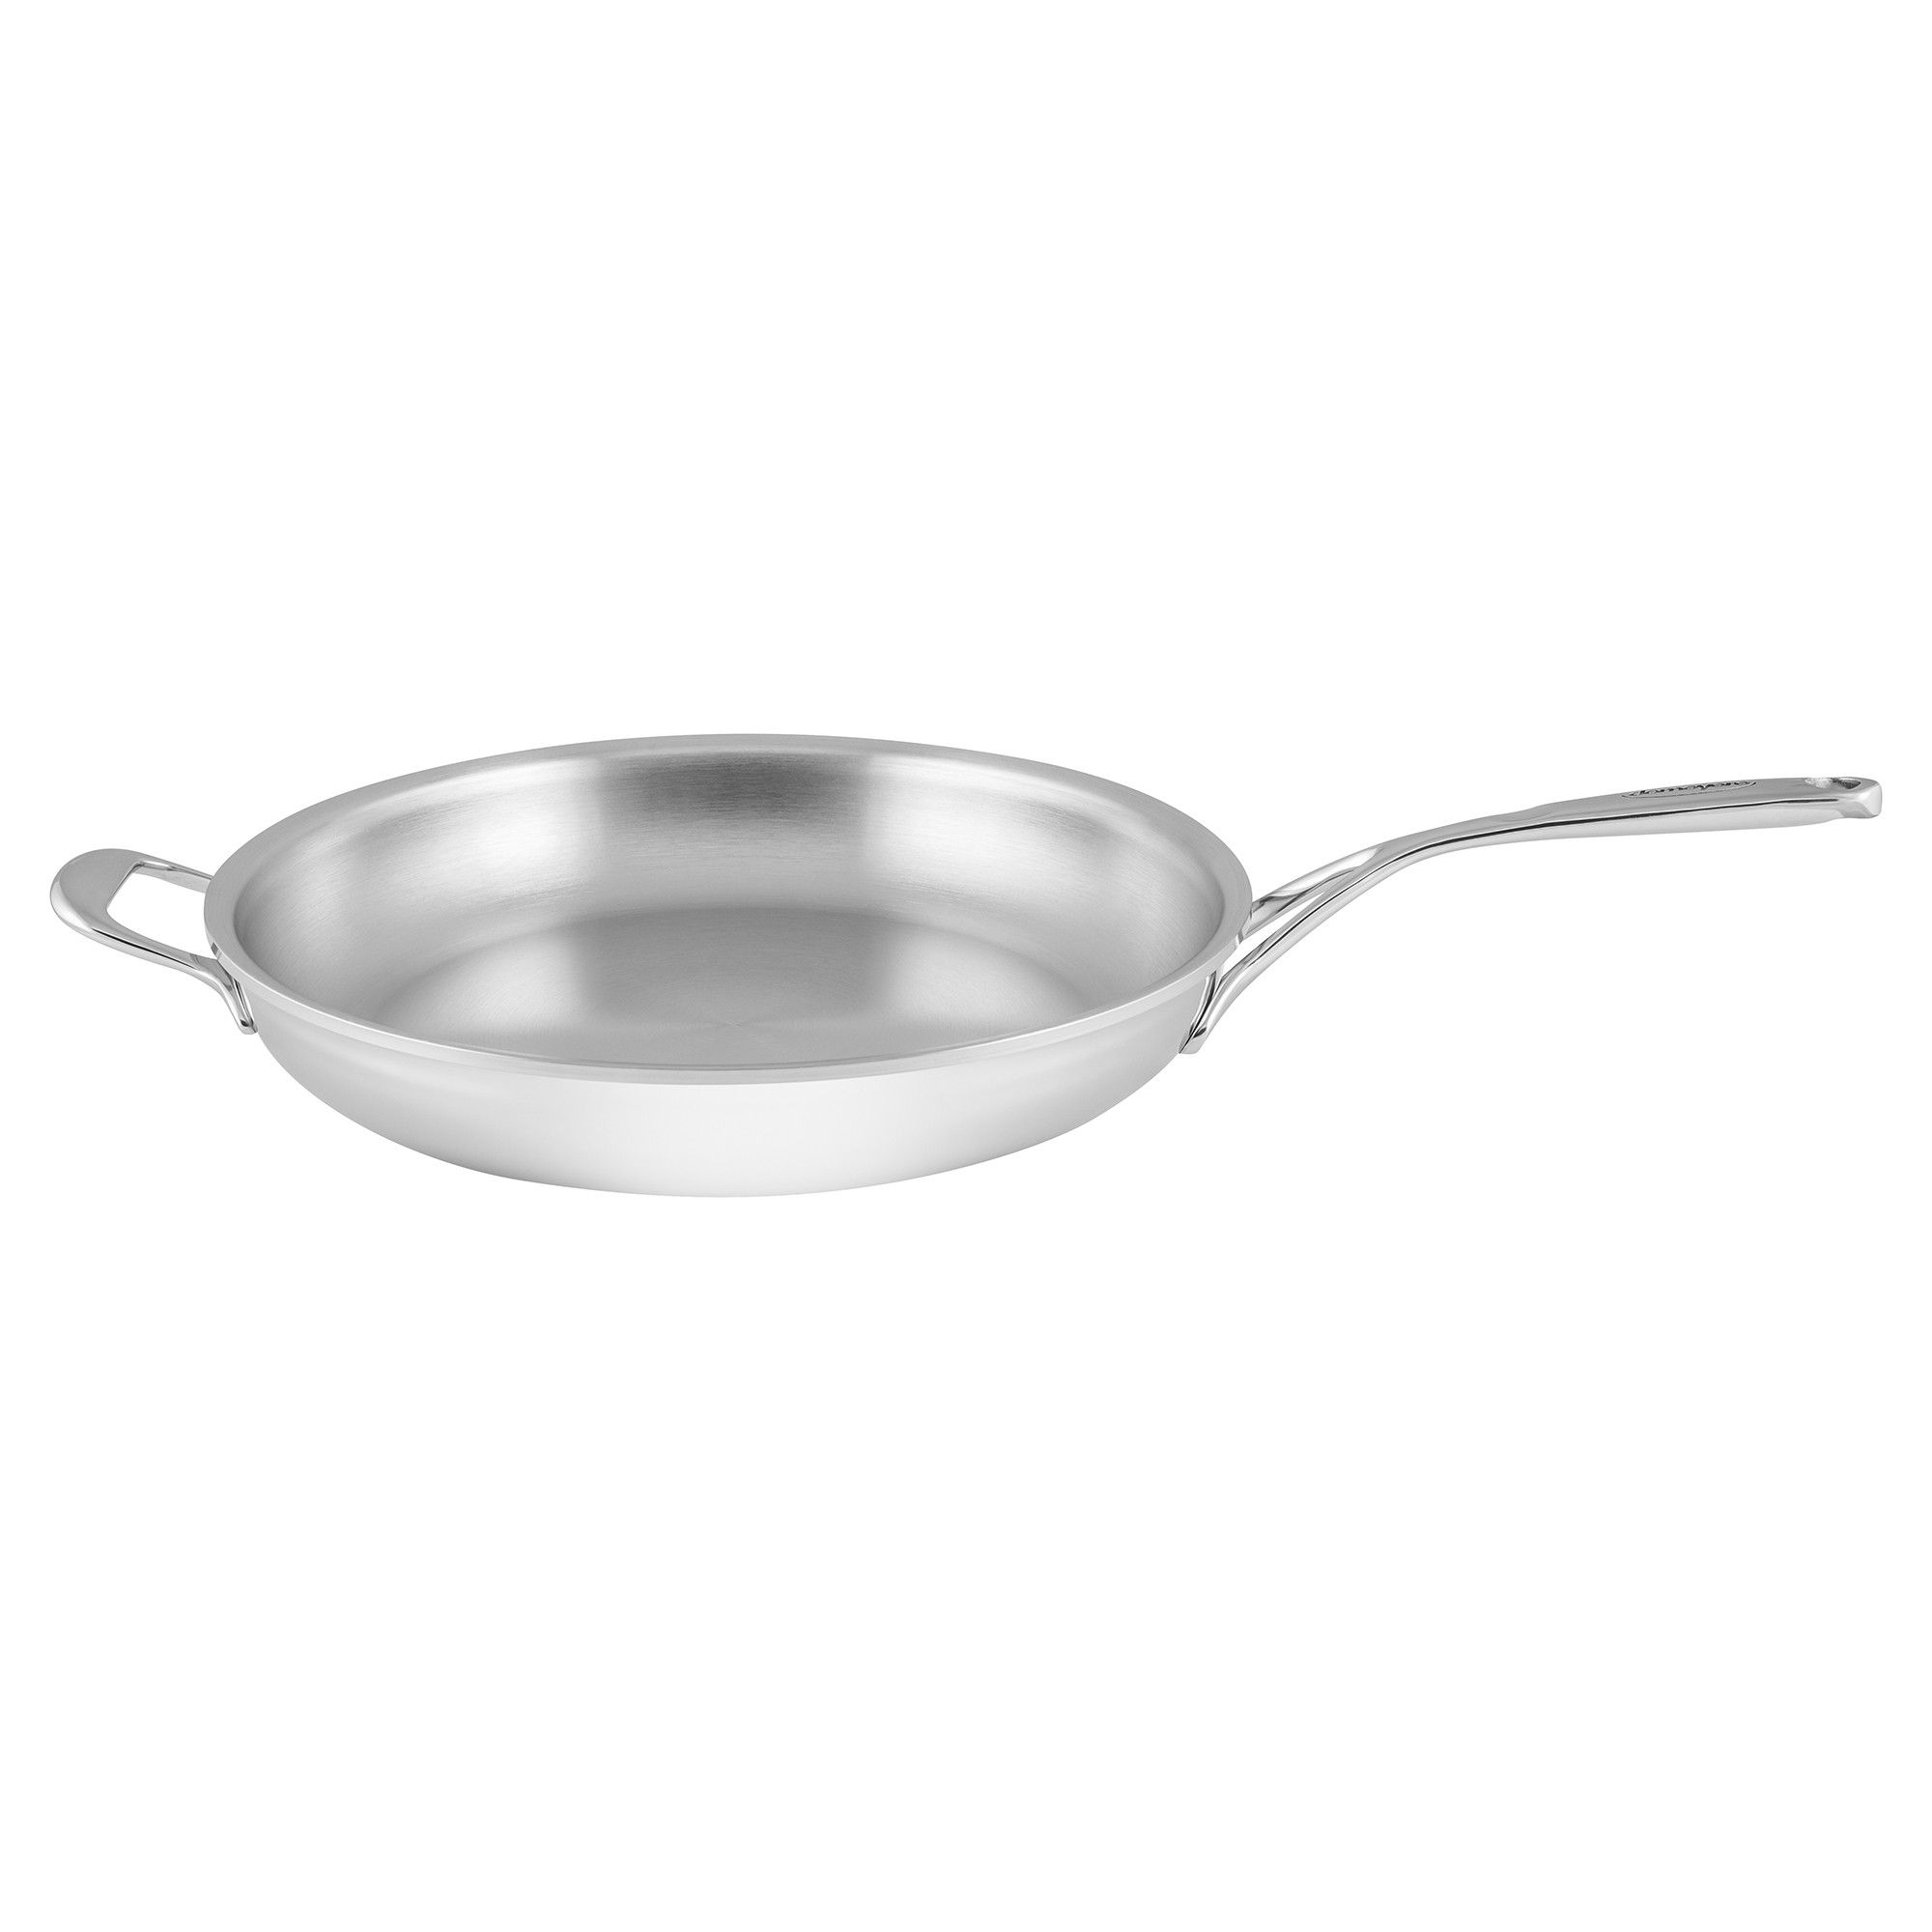 Target Stainless Steel Electric Fry Pan